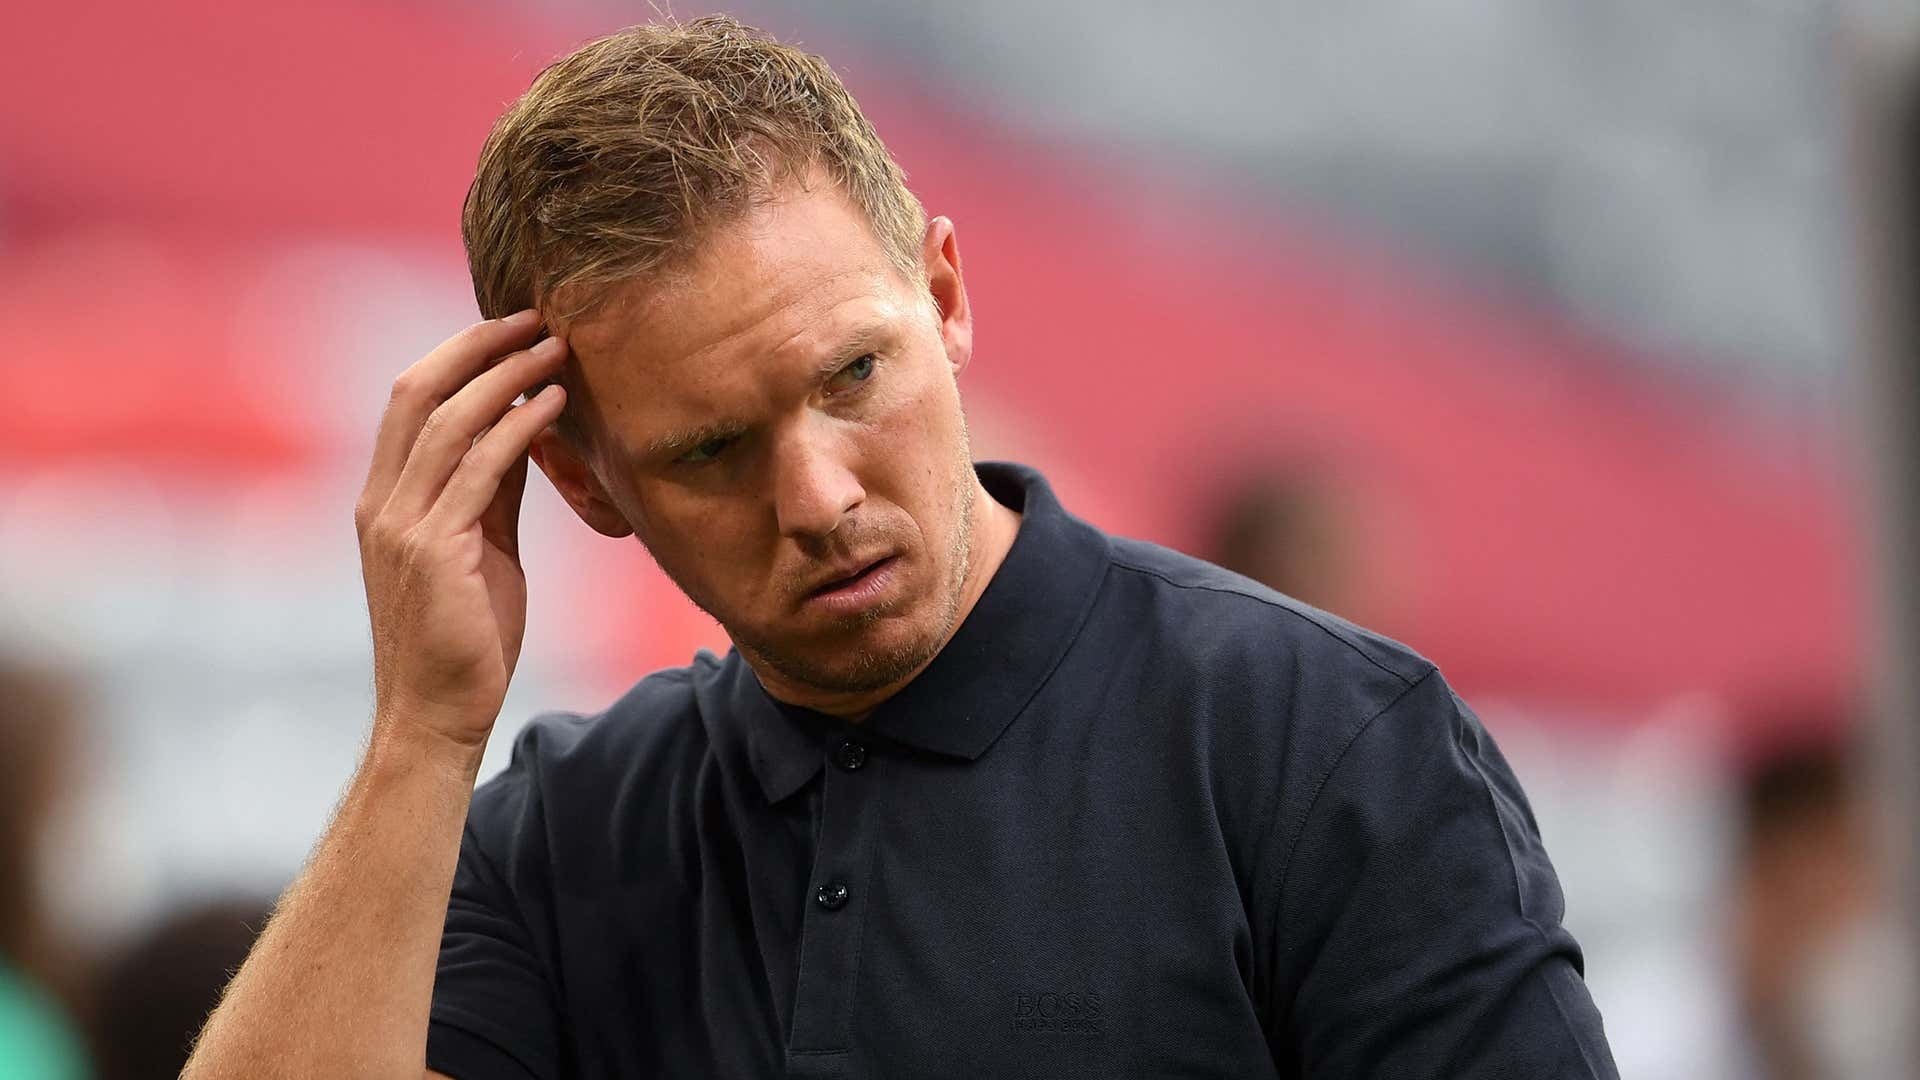 Bayern boss Nagelsmann tests positive for Covid-19